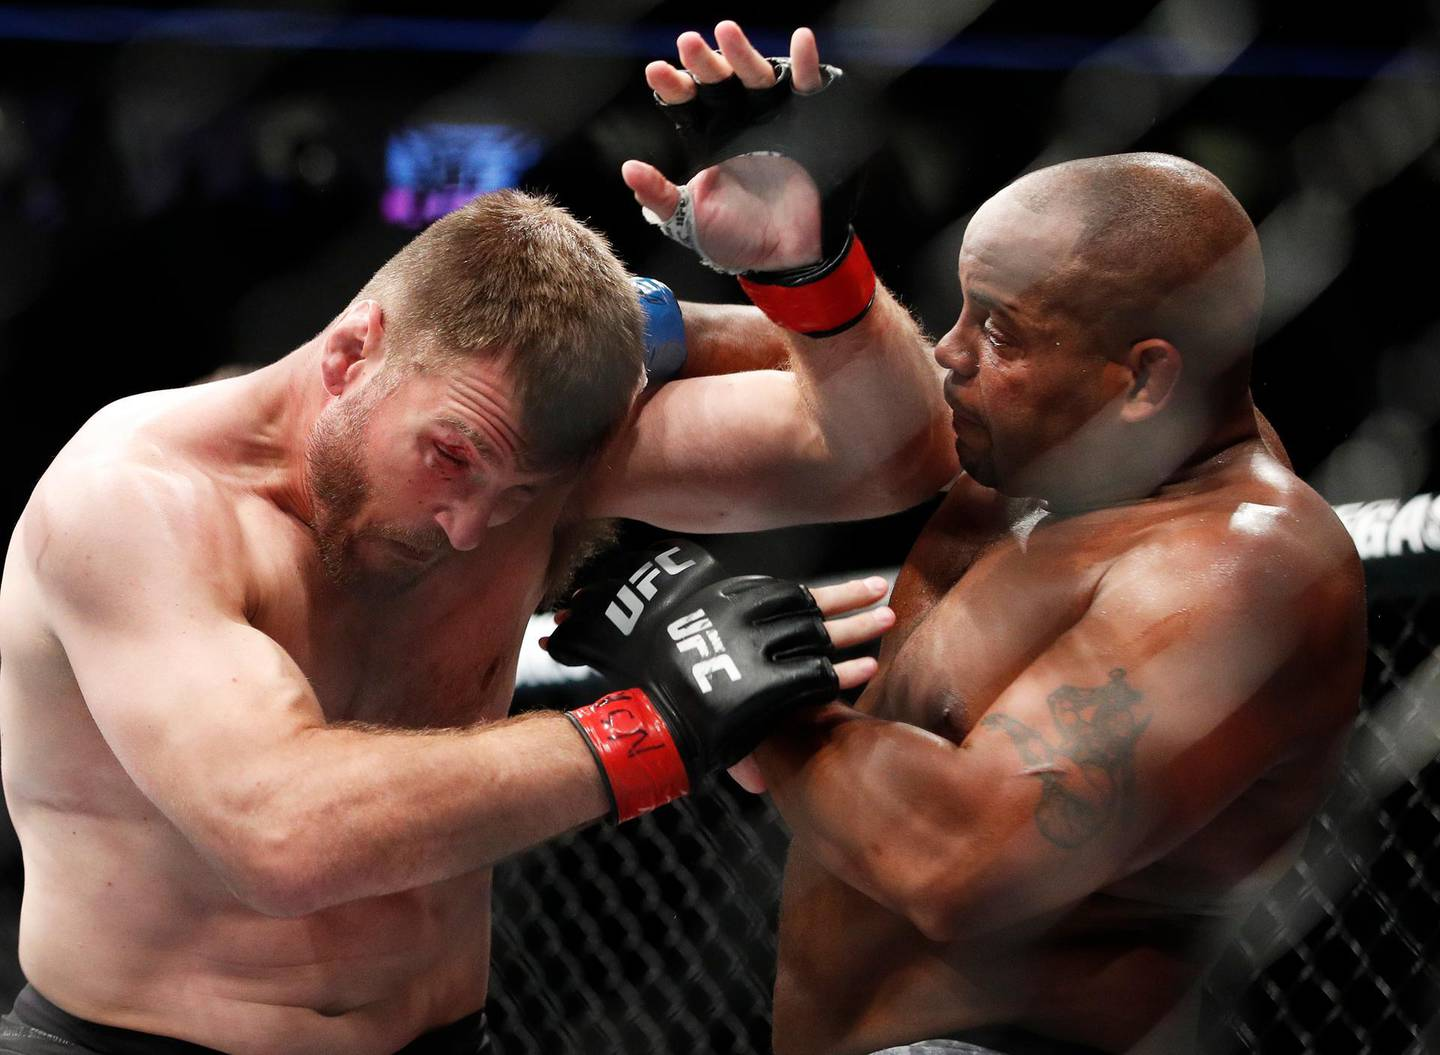 FILE - In this July 7, 2018, file photo, Daniel Cormier, right, fights Stipe Miocic during a heavyweight title mixed martial arts bout at UFC 226 in Las Vegas. The trilogy fight between Daniel Cormier and champ Stipe Miocic will crown the greatest heavyweight of all time. UFC 252 Saturday, Aug. 15, 2020, in Las Vegas could be Cormier's last fight ever. (AP Photo/John Locher, File)